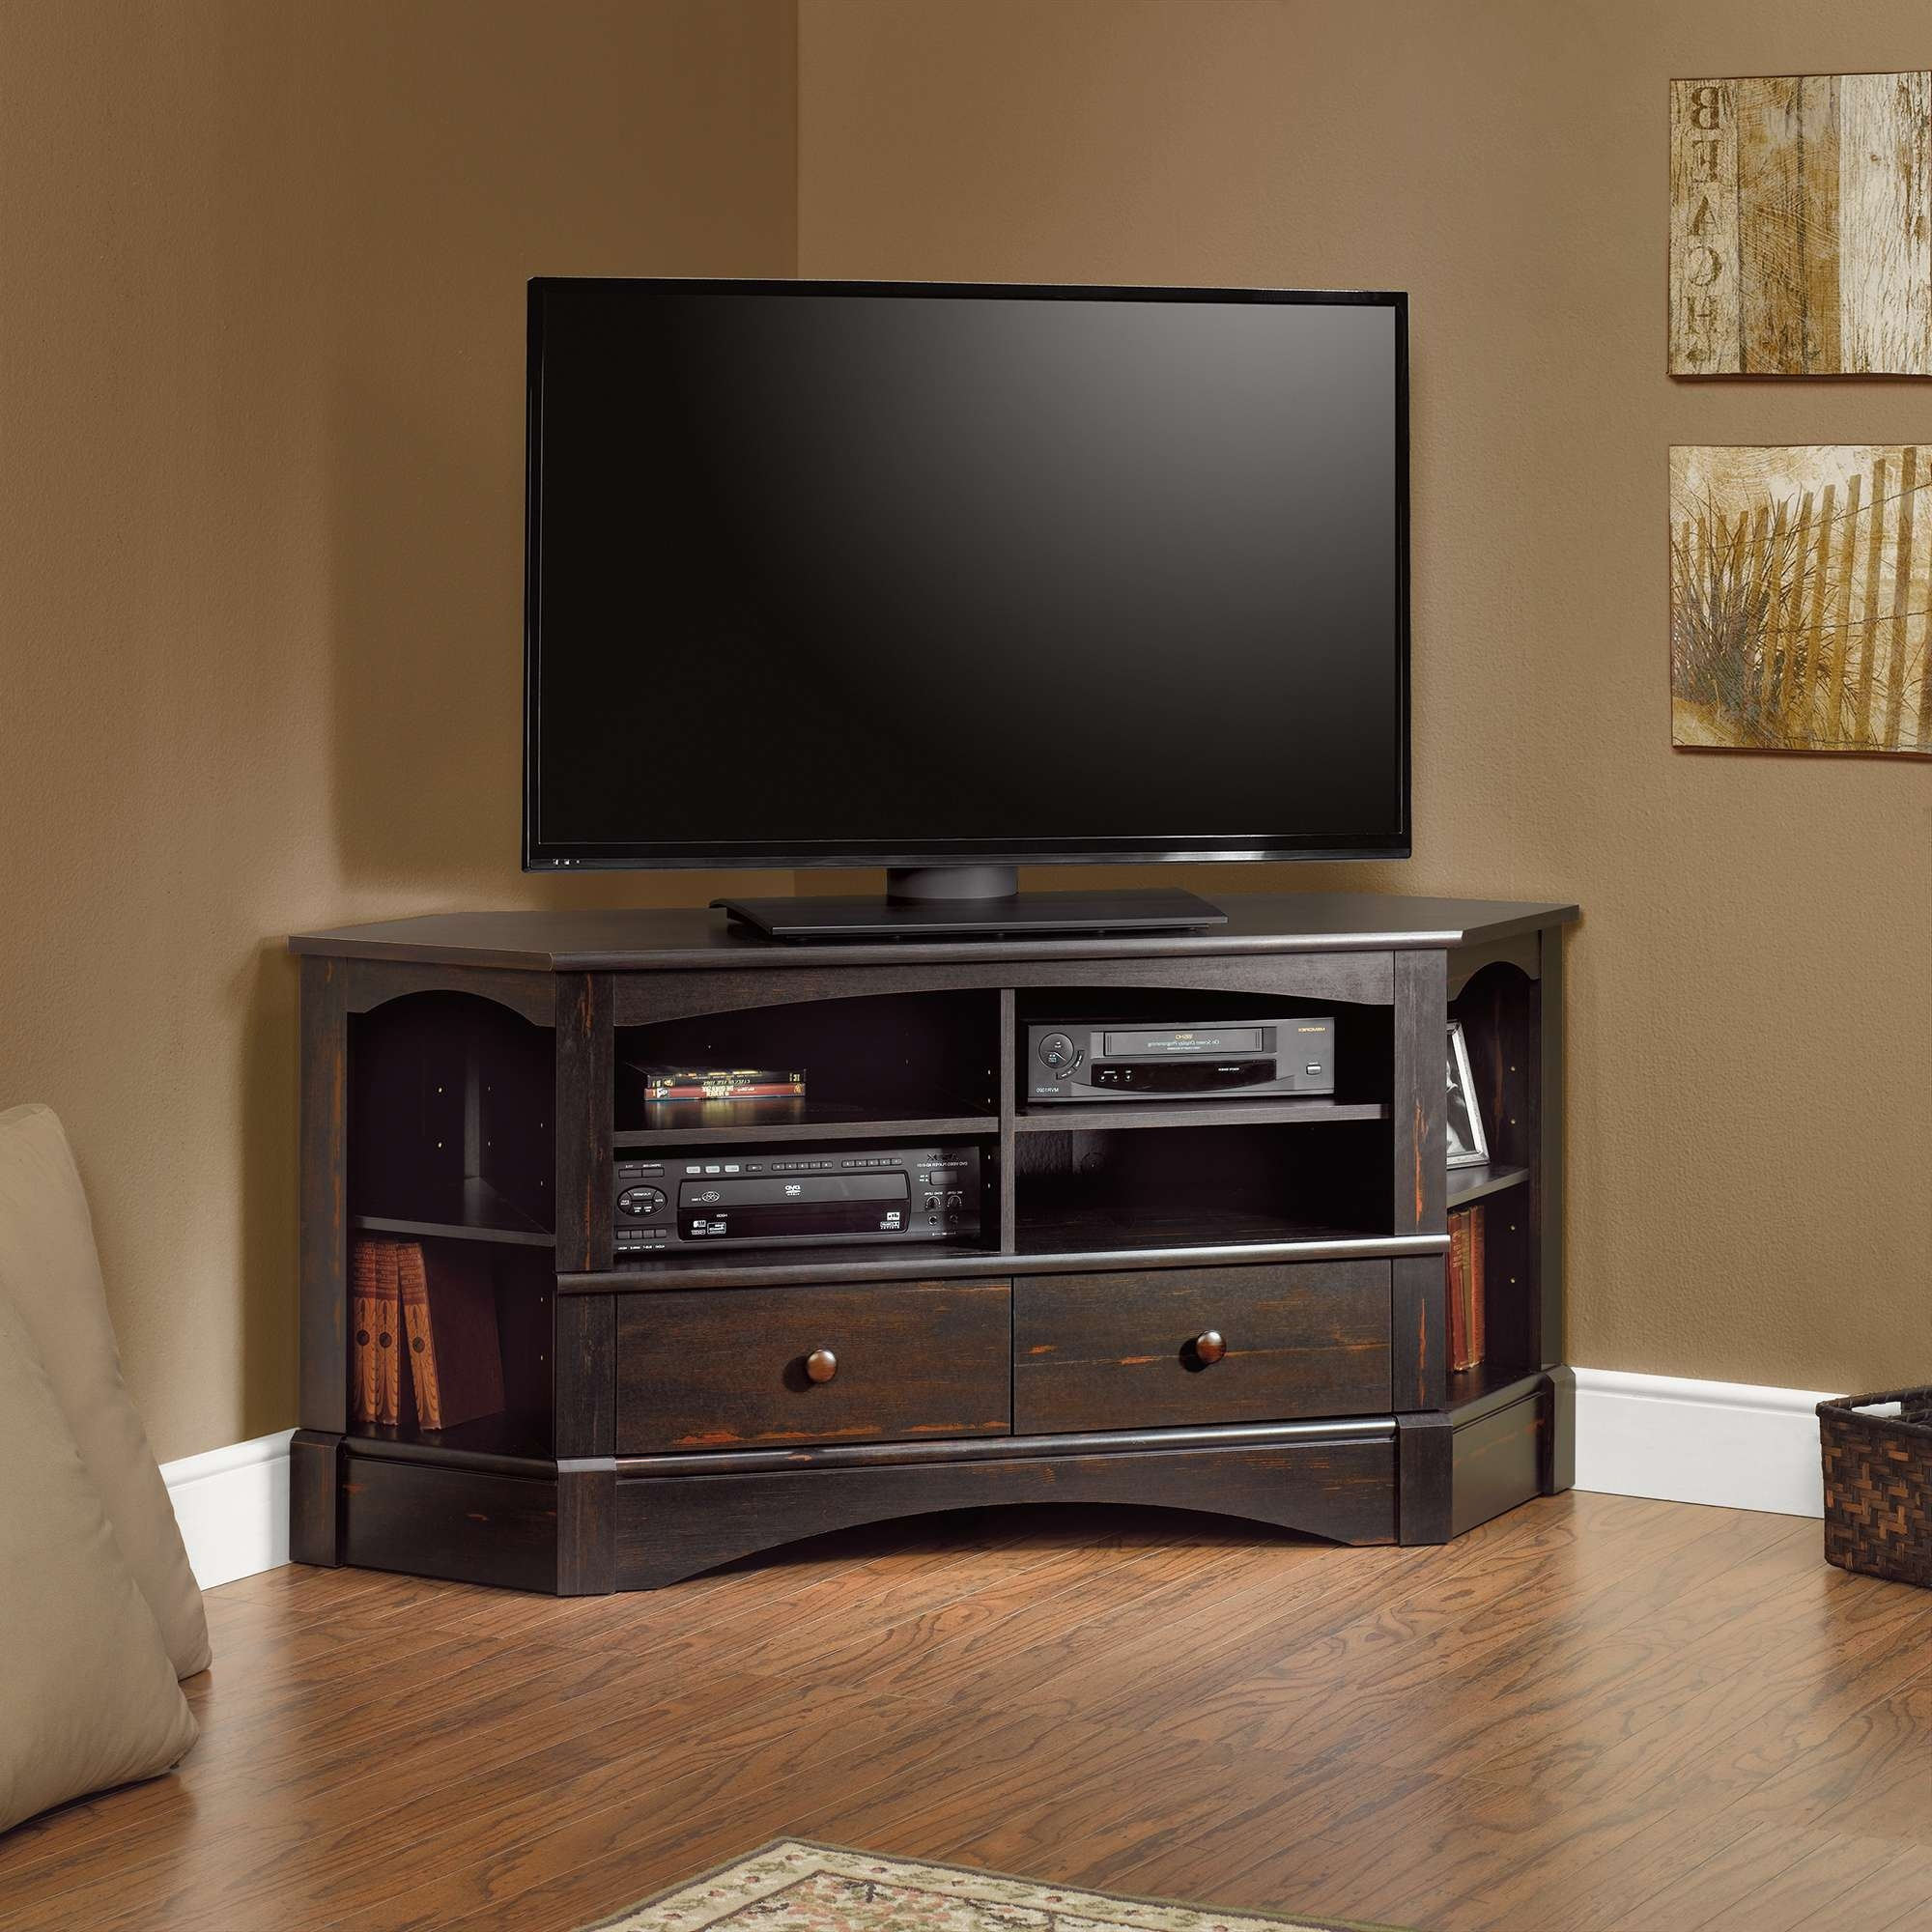 Harbor View | Corner Entertainment Credenza | 402902 | Sauder With Tv Stands For Corner (View 6 of 15)